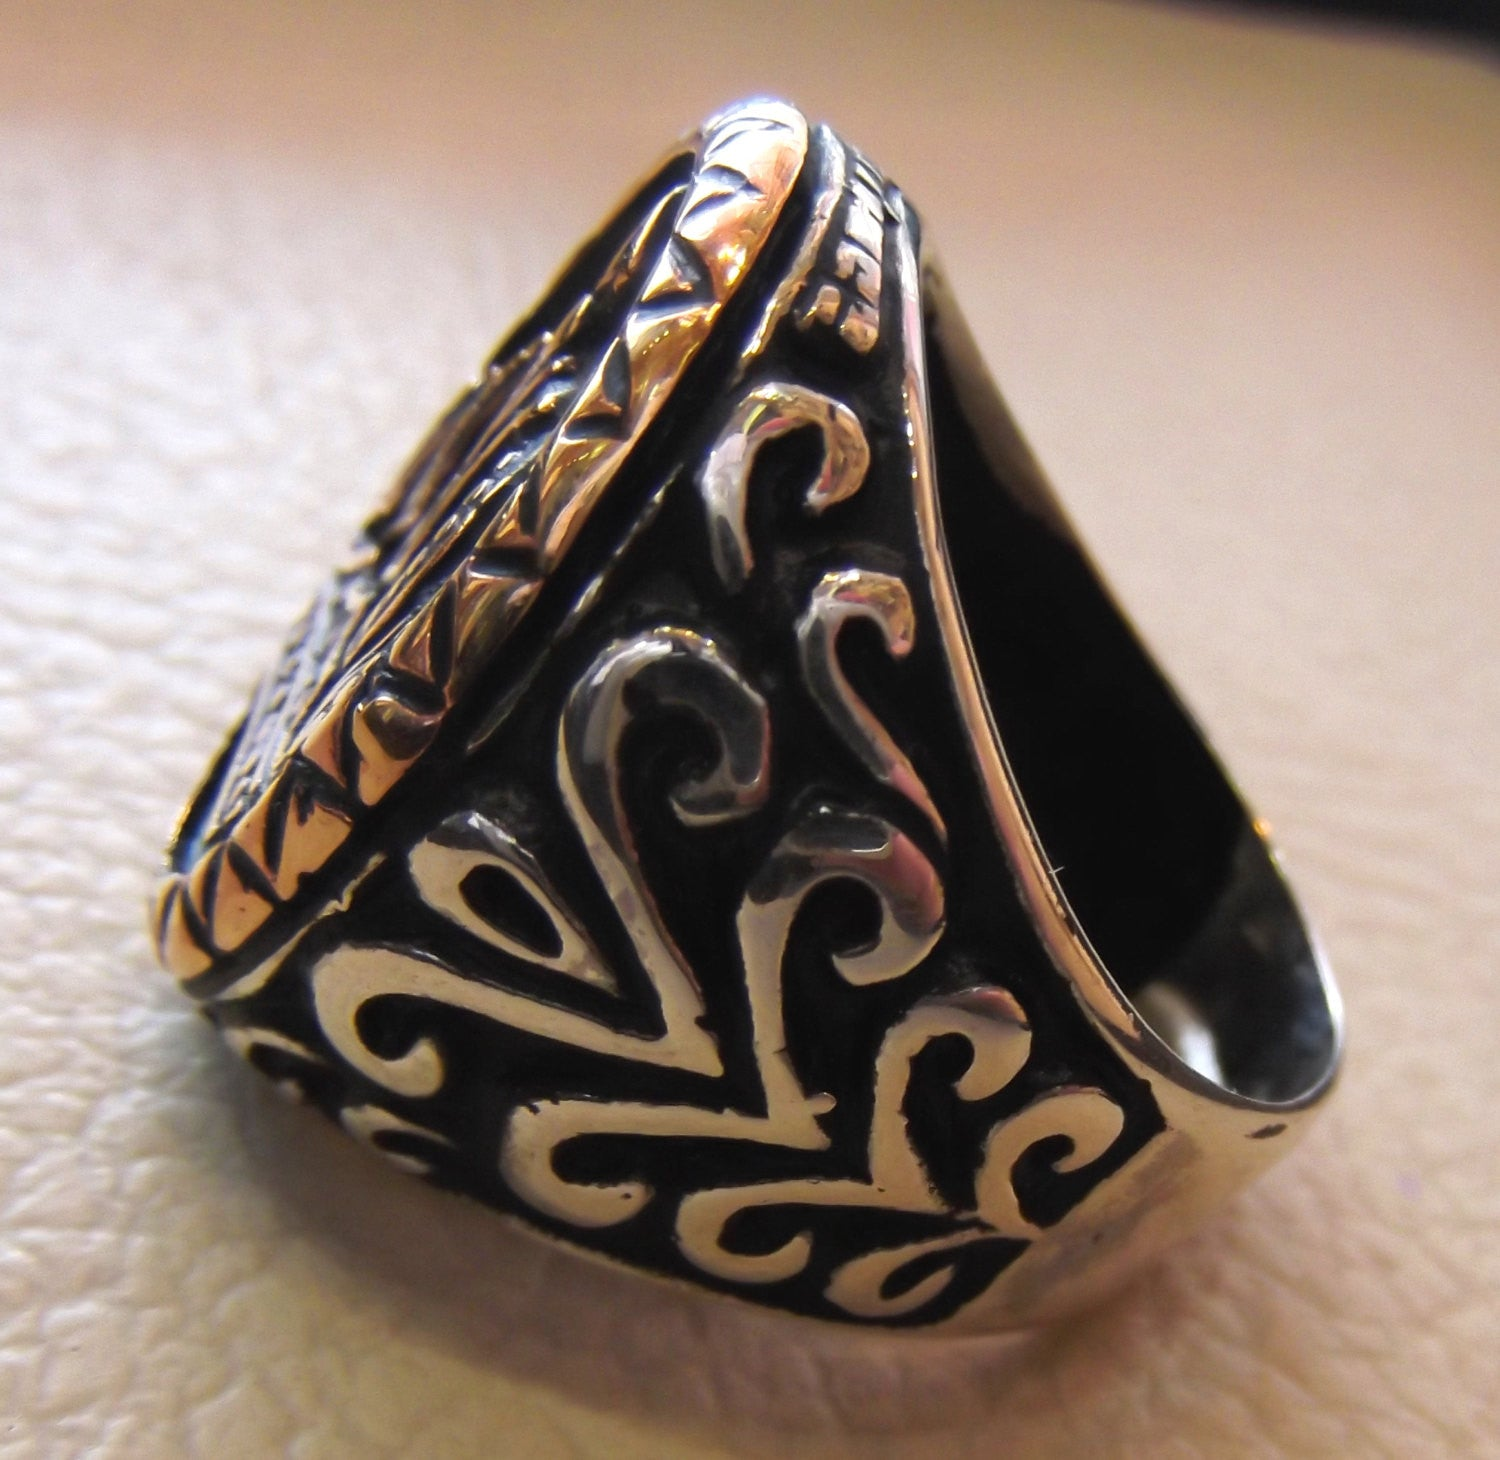 royal crown men ring sterling silver 925 vintage style bronze big heavy jewelry all sizes king black and white